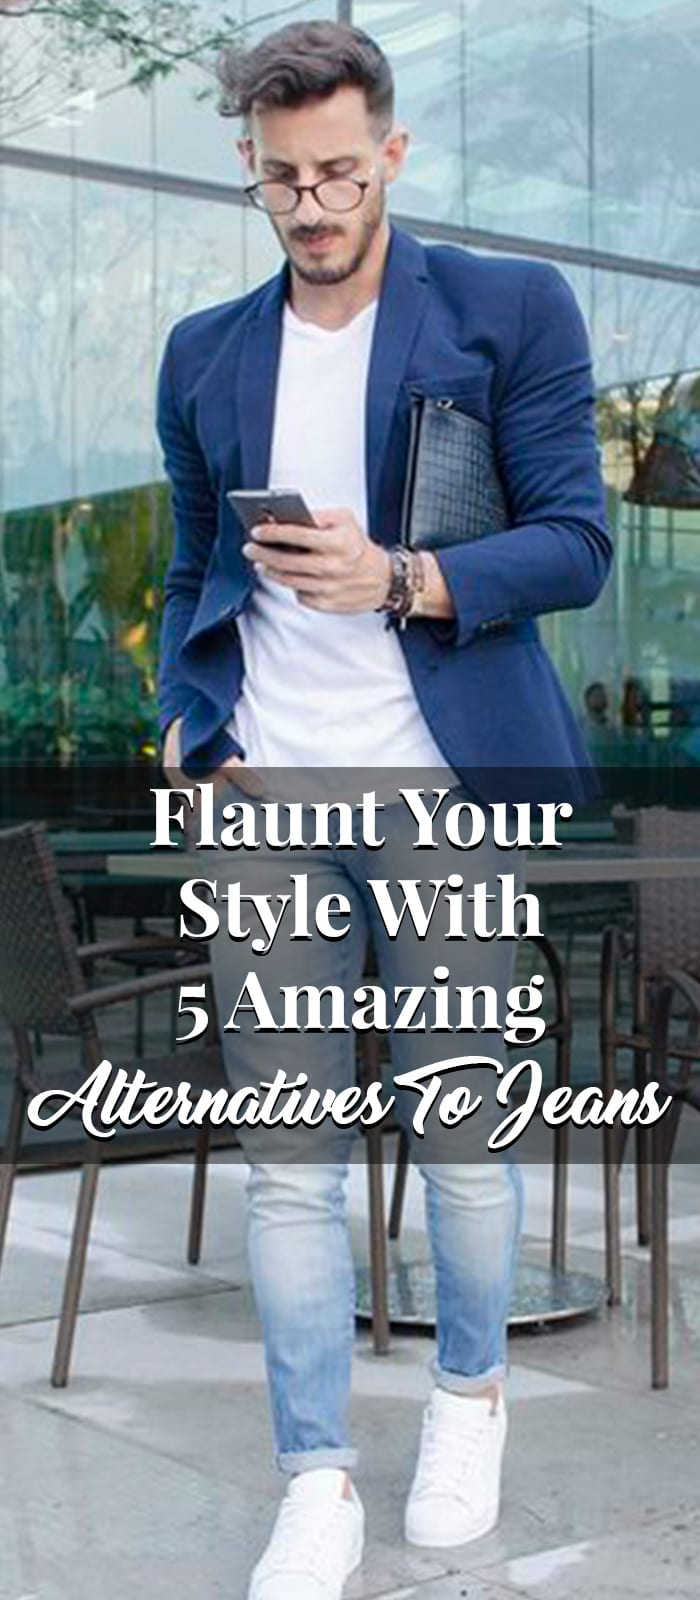 Flaunt Your Style With 5 Amazing Alternatives To Jeans